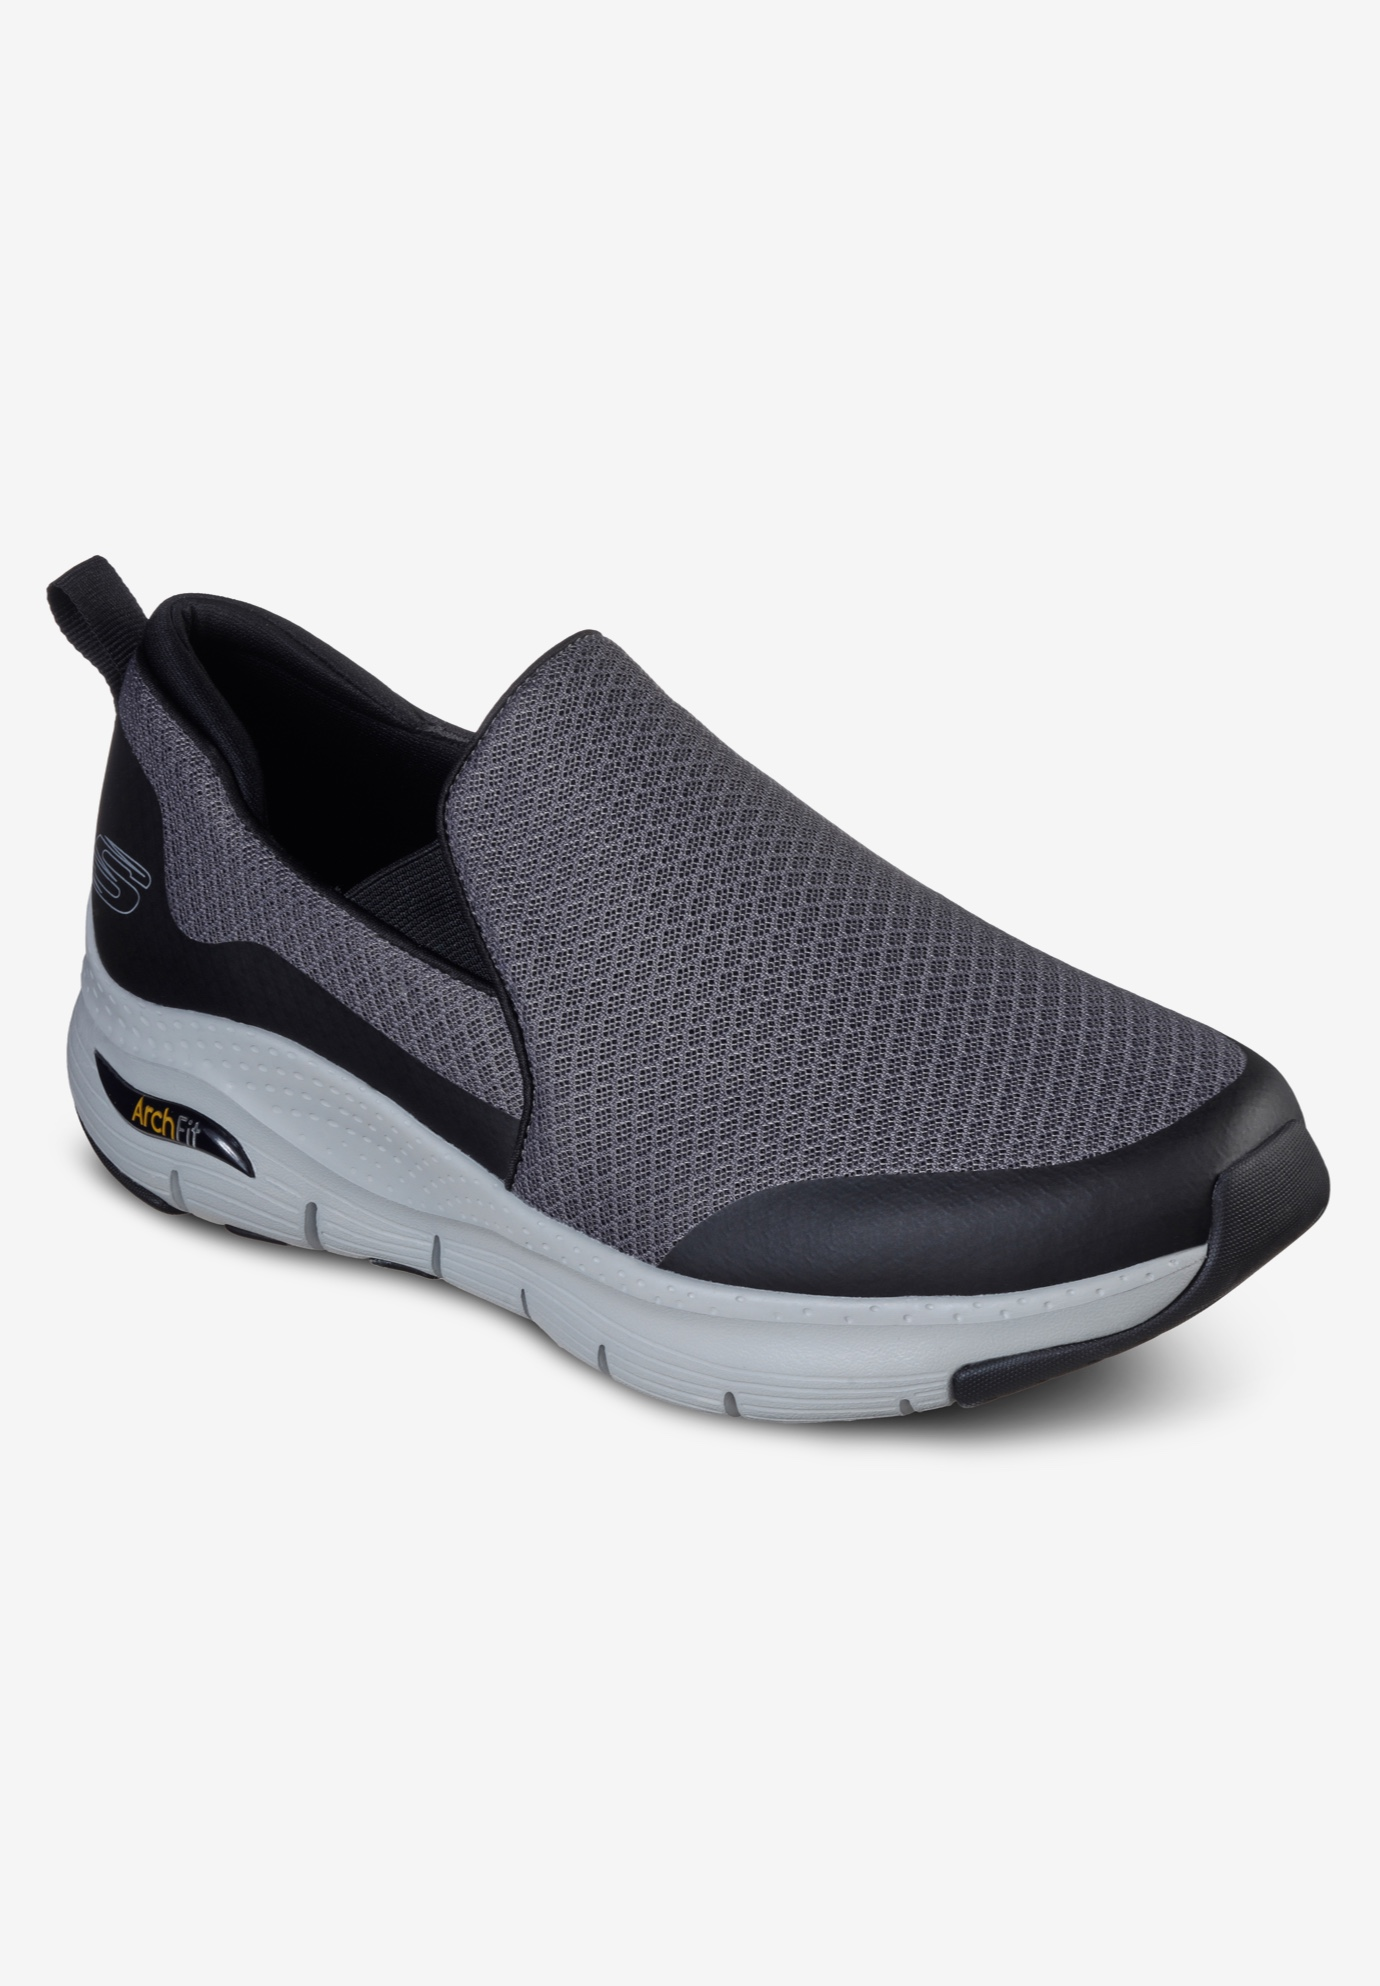 GOWalk Arch Fit Slip-On Shoes,